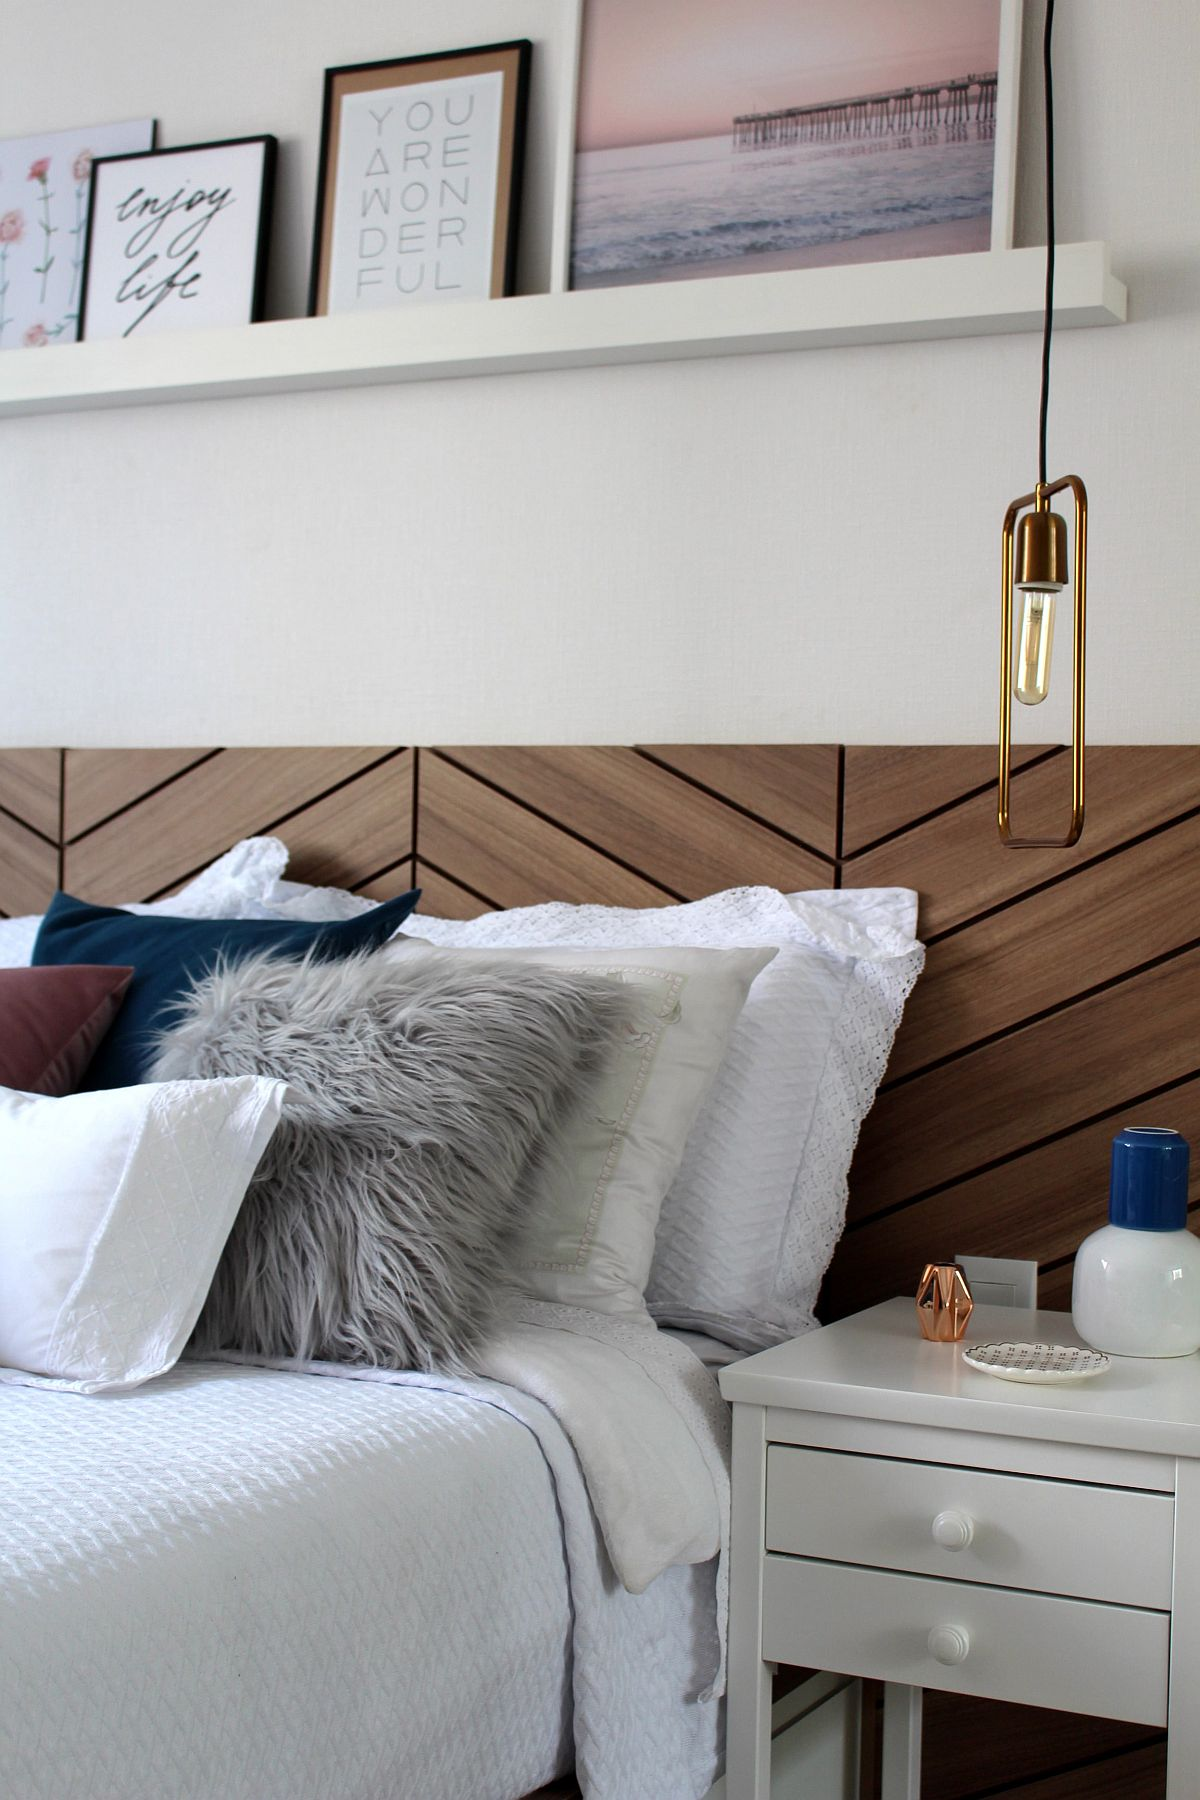 Slim bedside lighting with metallic glitz brings contrast to the modern wood and white bedroom